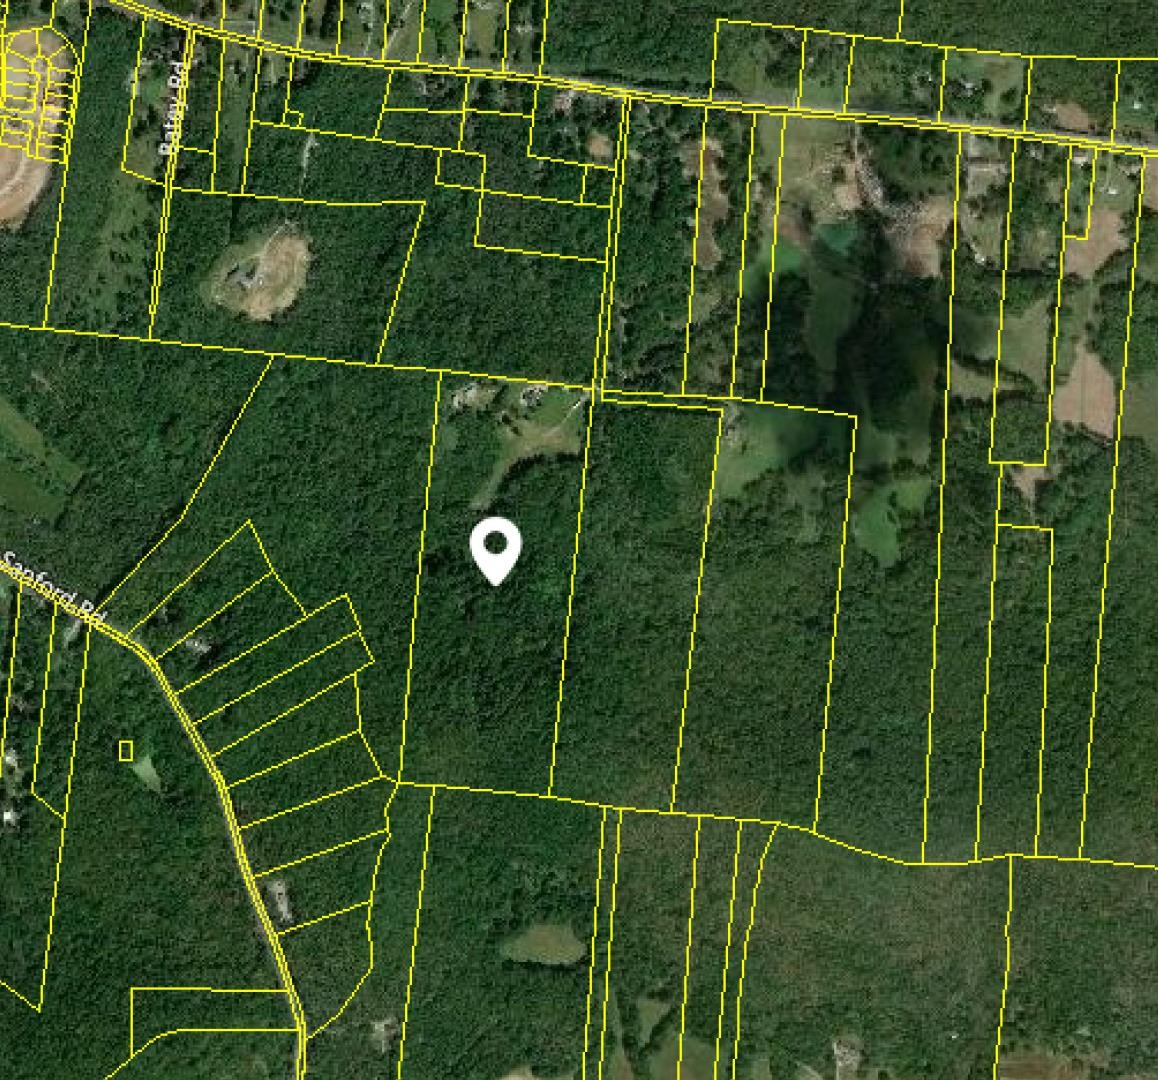 40 Acres of mostly treed land. Perfect for a hideaway home or possible development. Easily accessible to I24, I65, and 840. Don't miss this spectacular property.